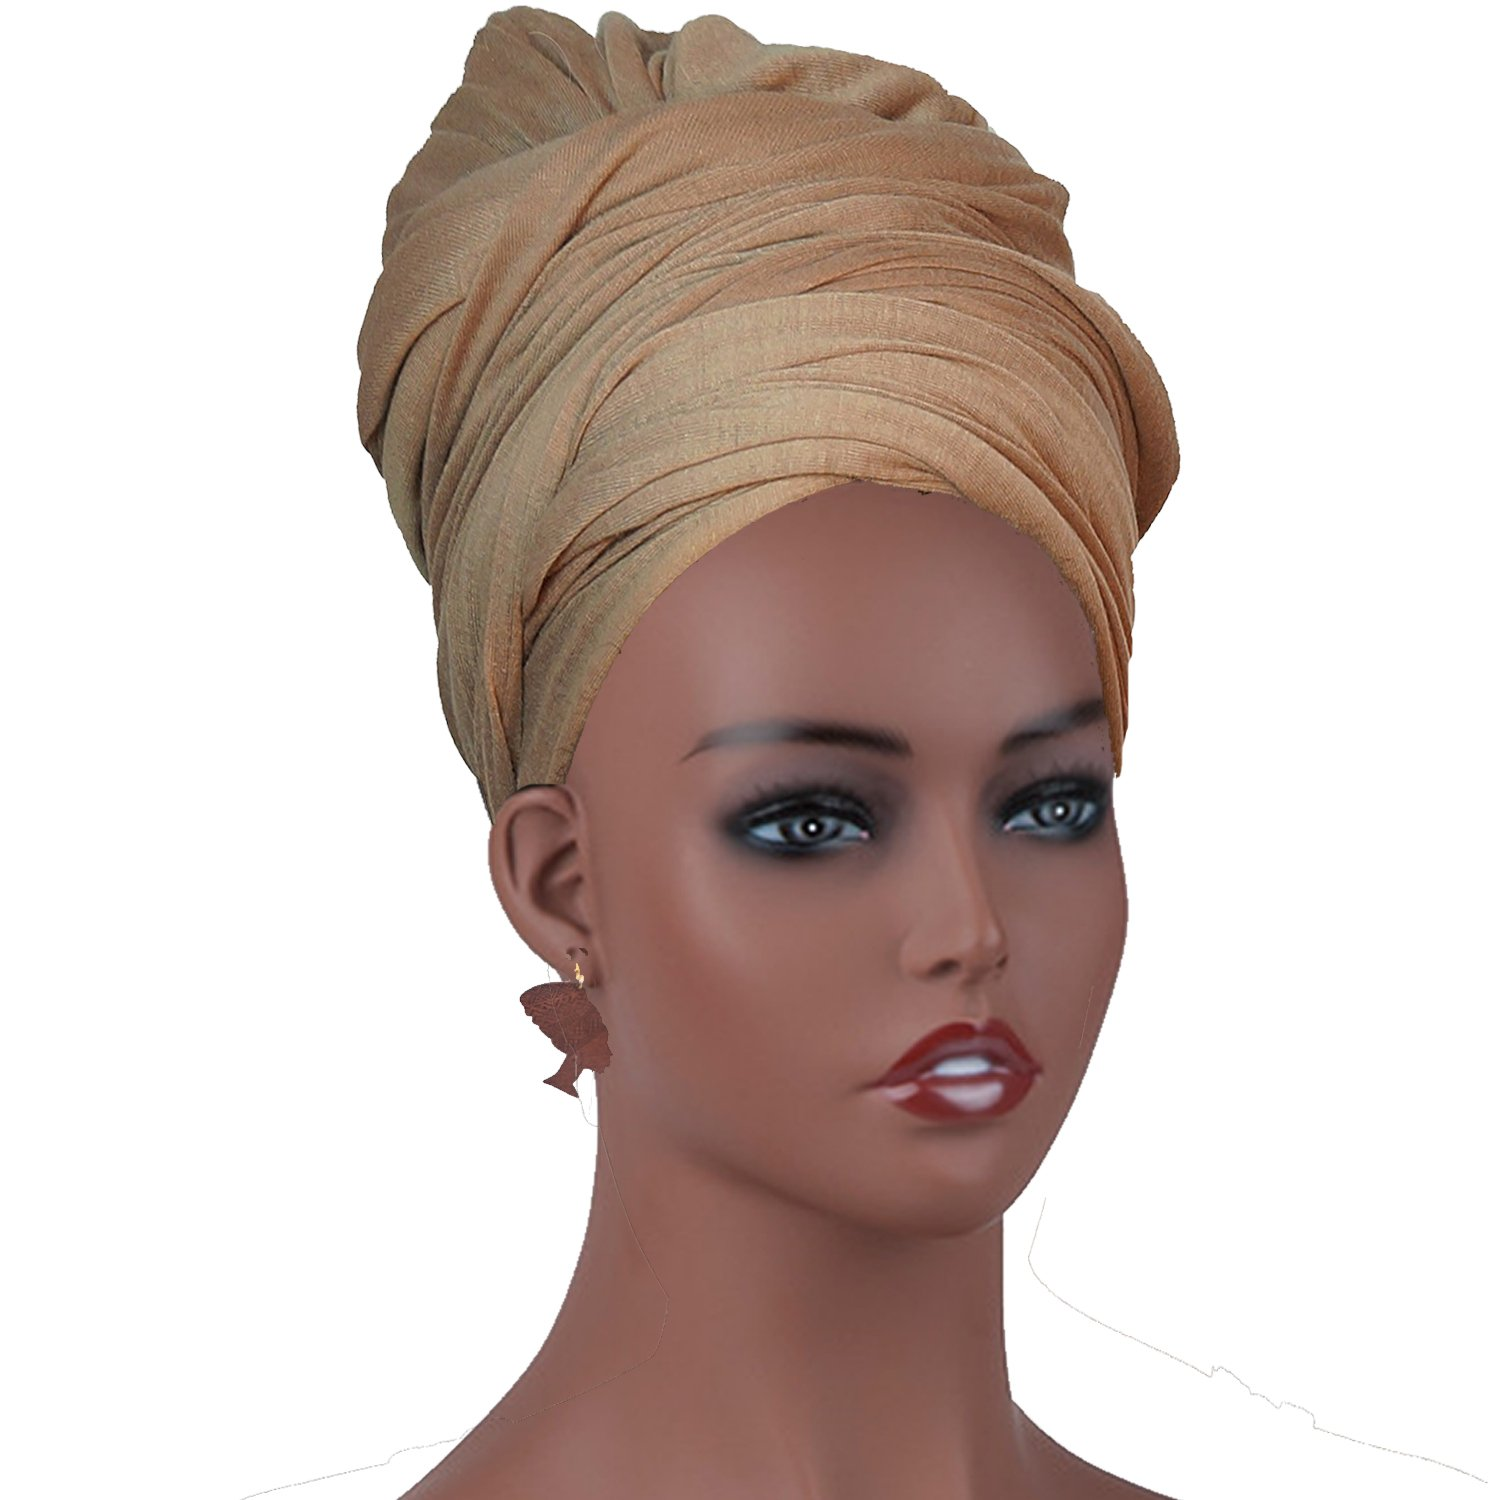 Amazon.com: Long Stretch Head Wrap Set- Solid Color African Turban Hair Scarf Tie, Double Sided Edge Control Hair Brush Comb Combo,Wooden Colored Turban ...